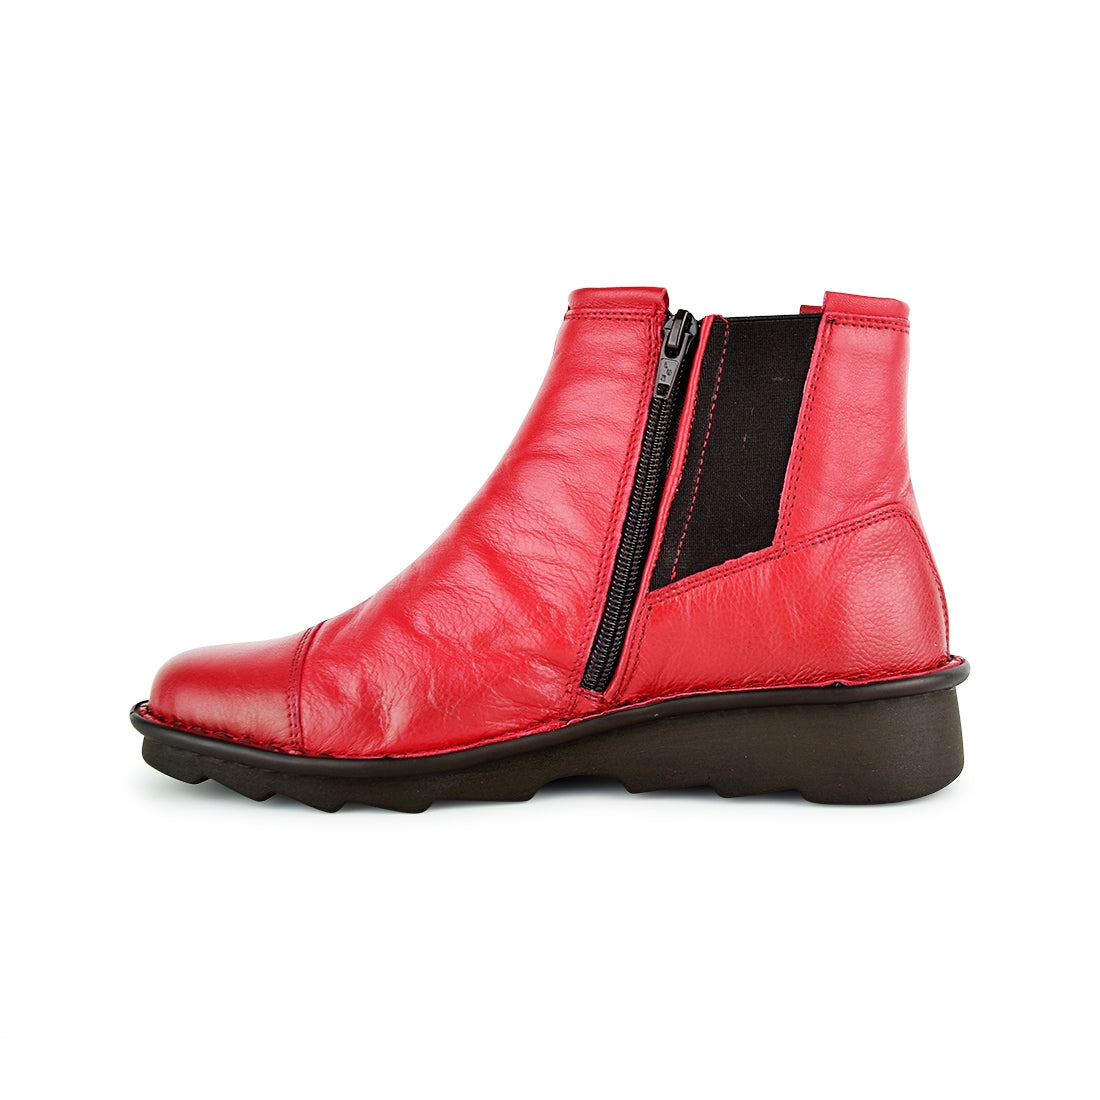 TRONI - Relax Ankle Boots Red